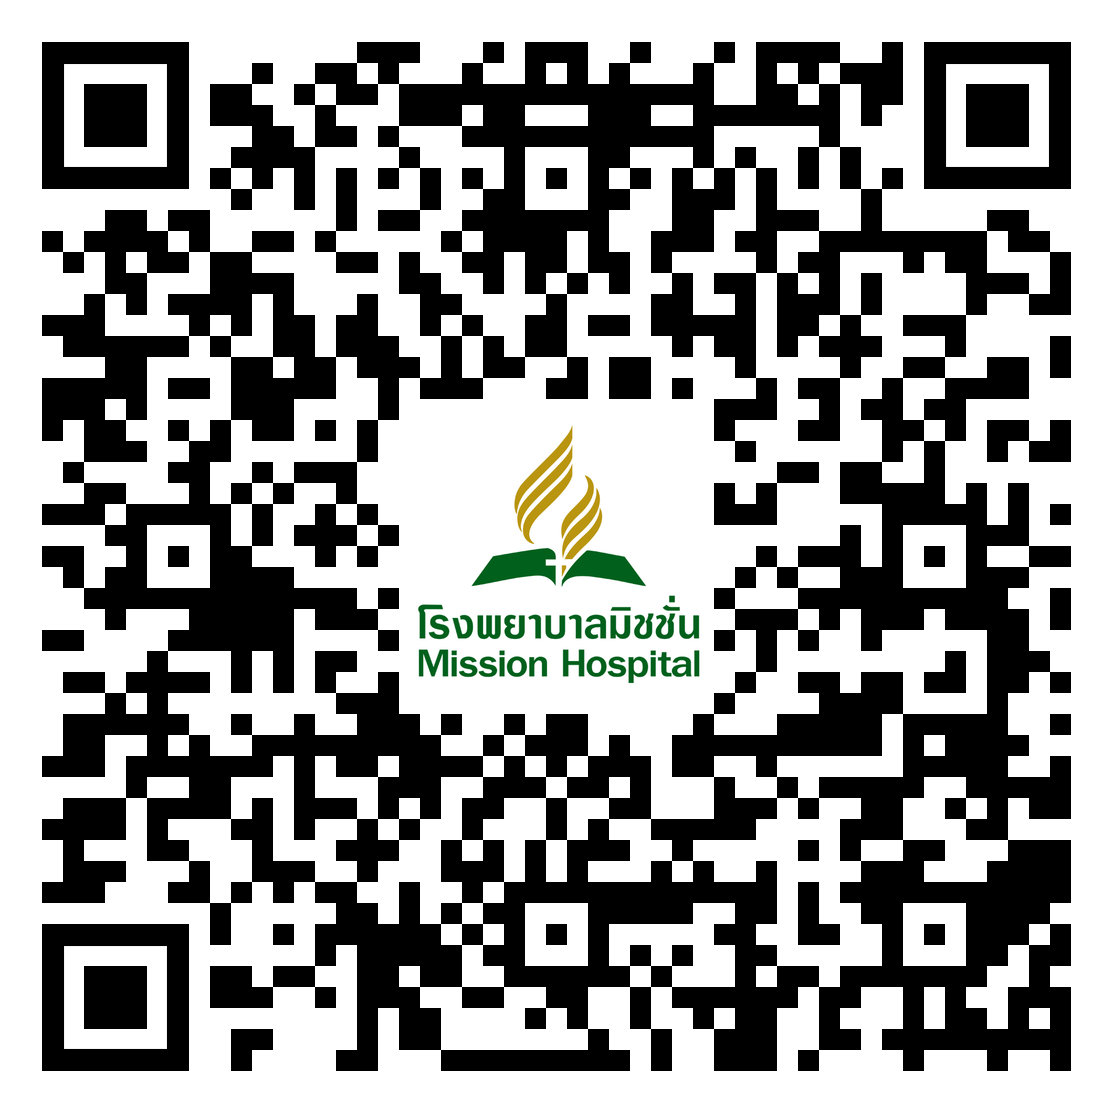 New Patient register qr code